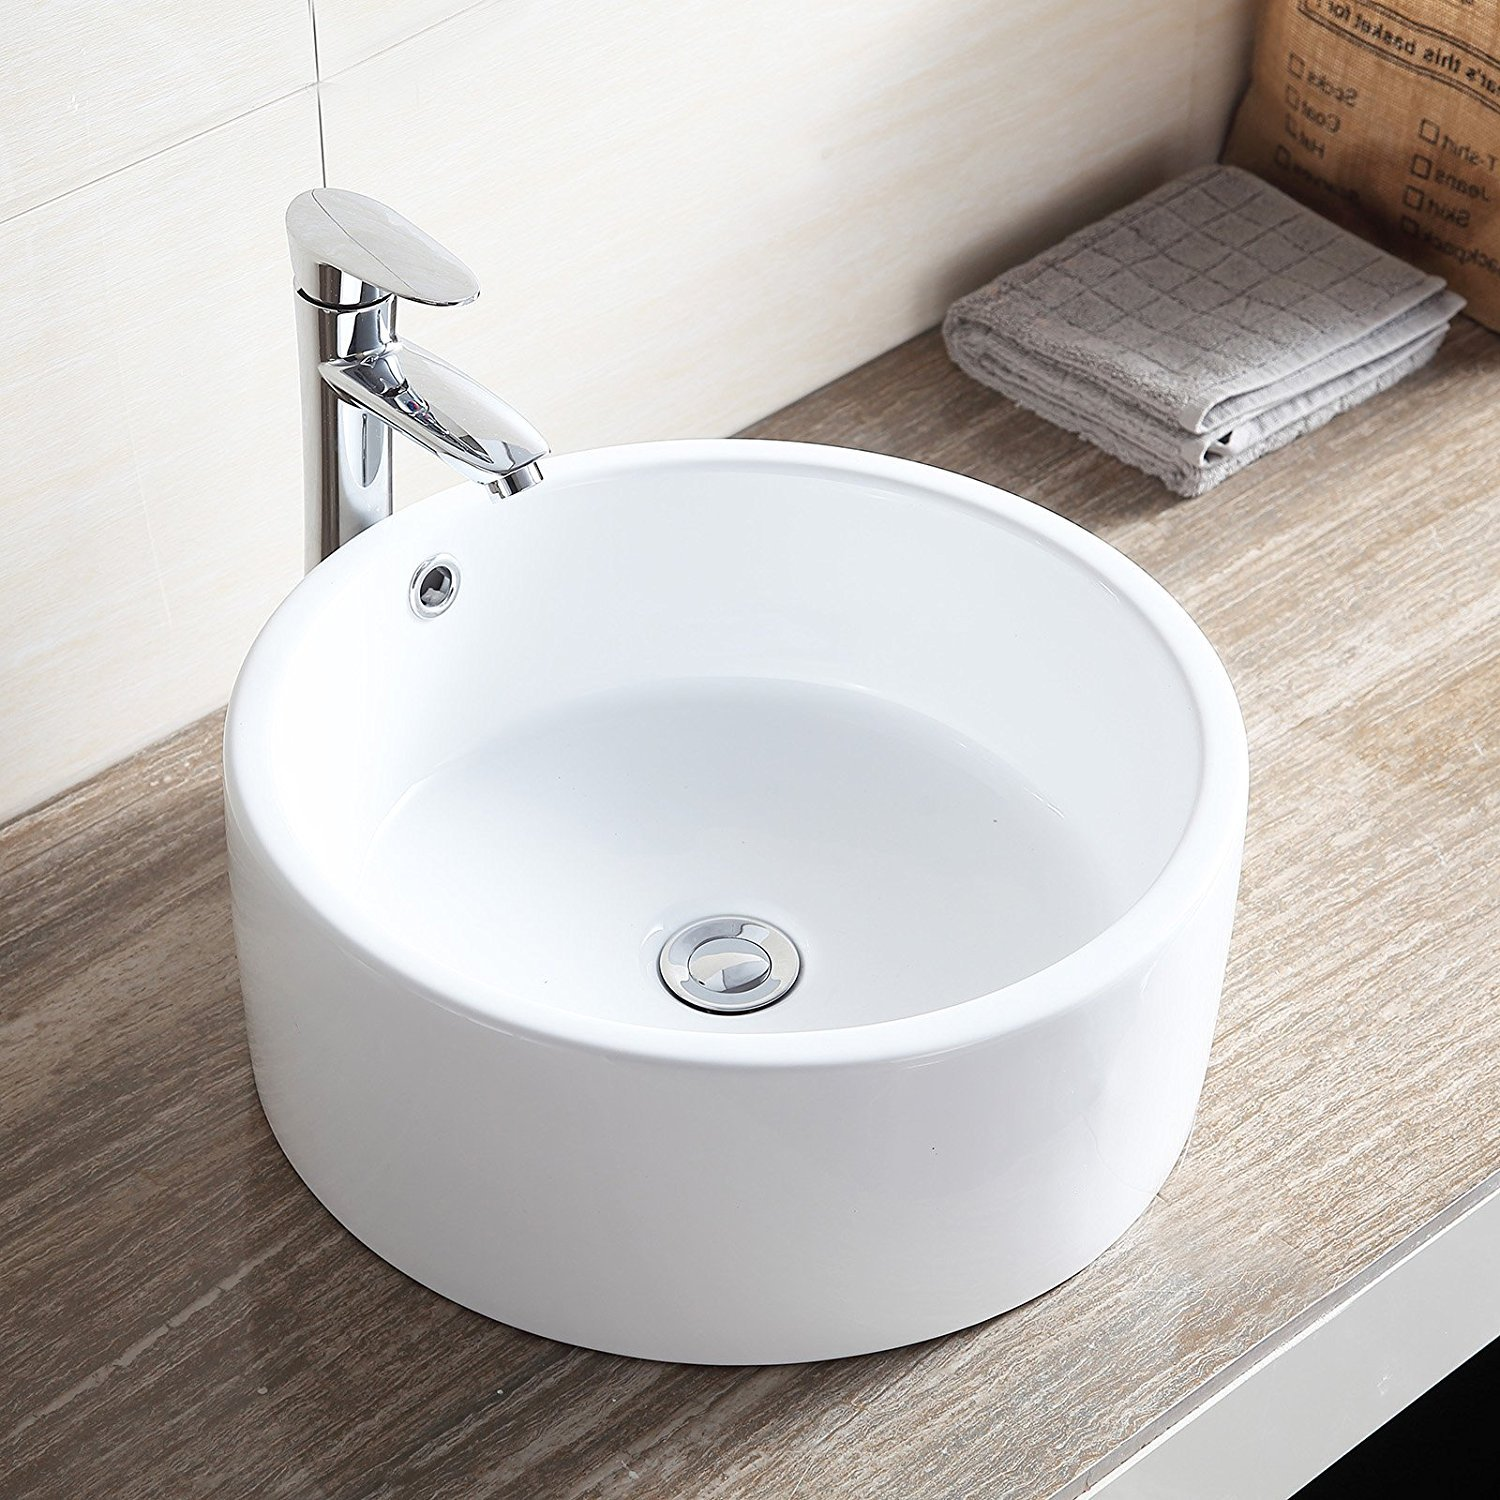 Small Round White Porcelain Ceramic Bathroom Vessel Sink Vanity Above Counter and Faucet Combo,Pop-Up Drain,Art Basin